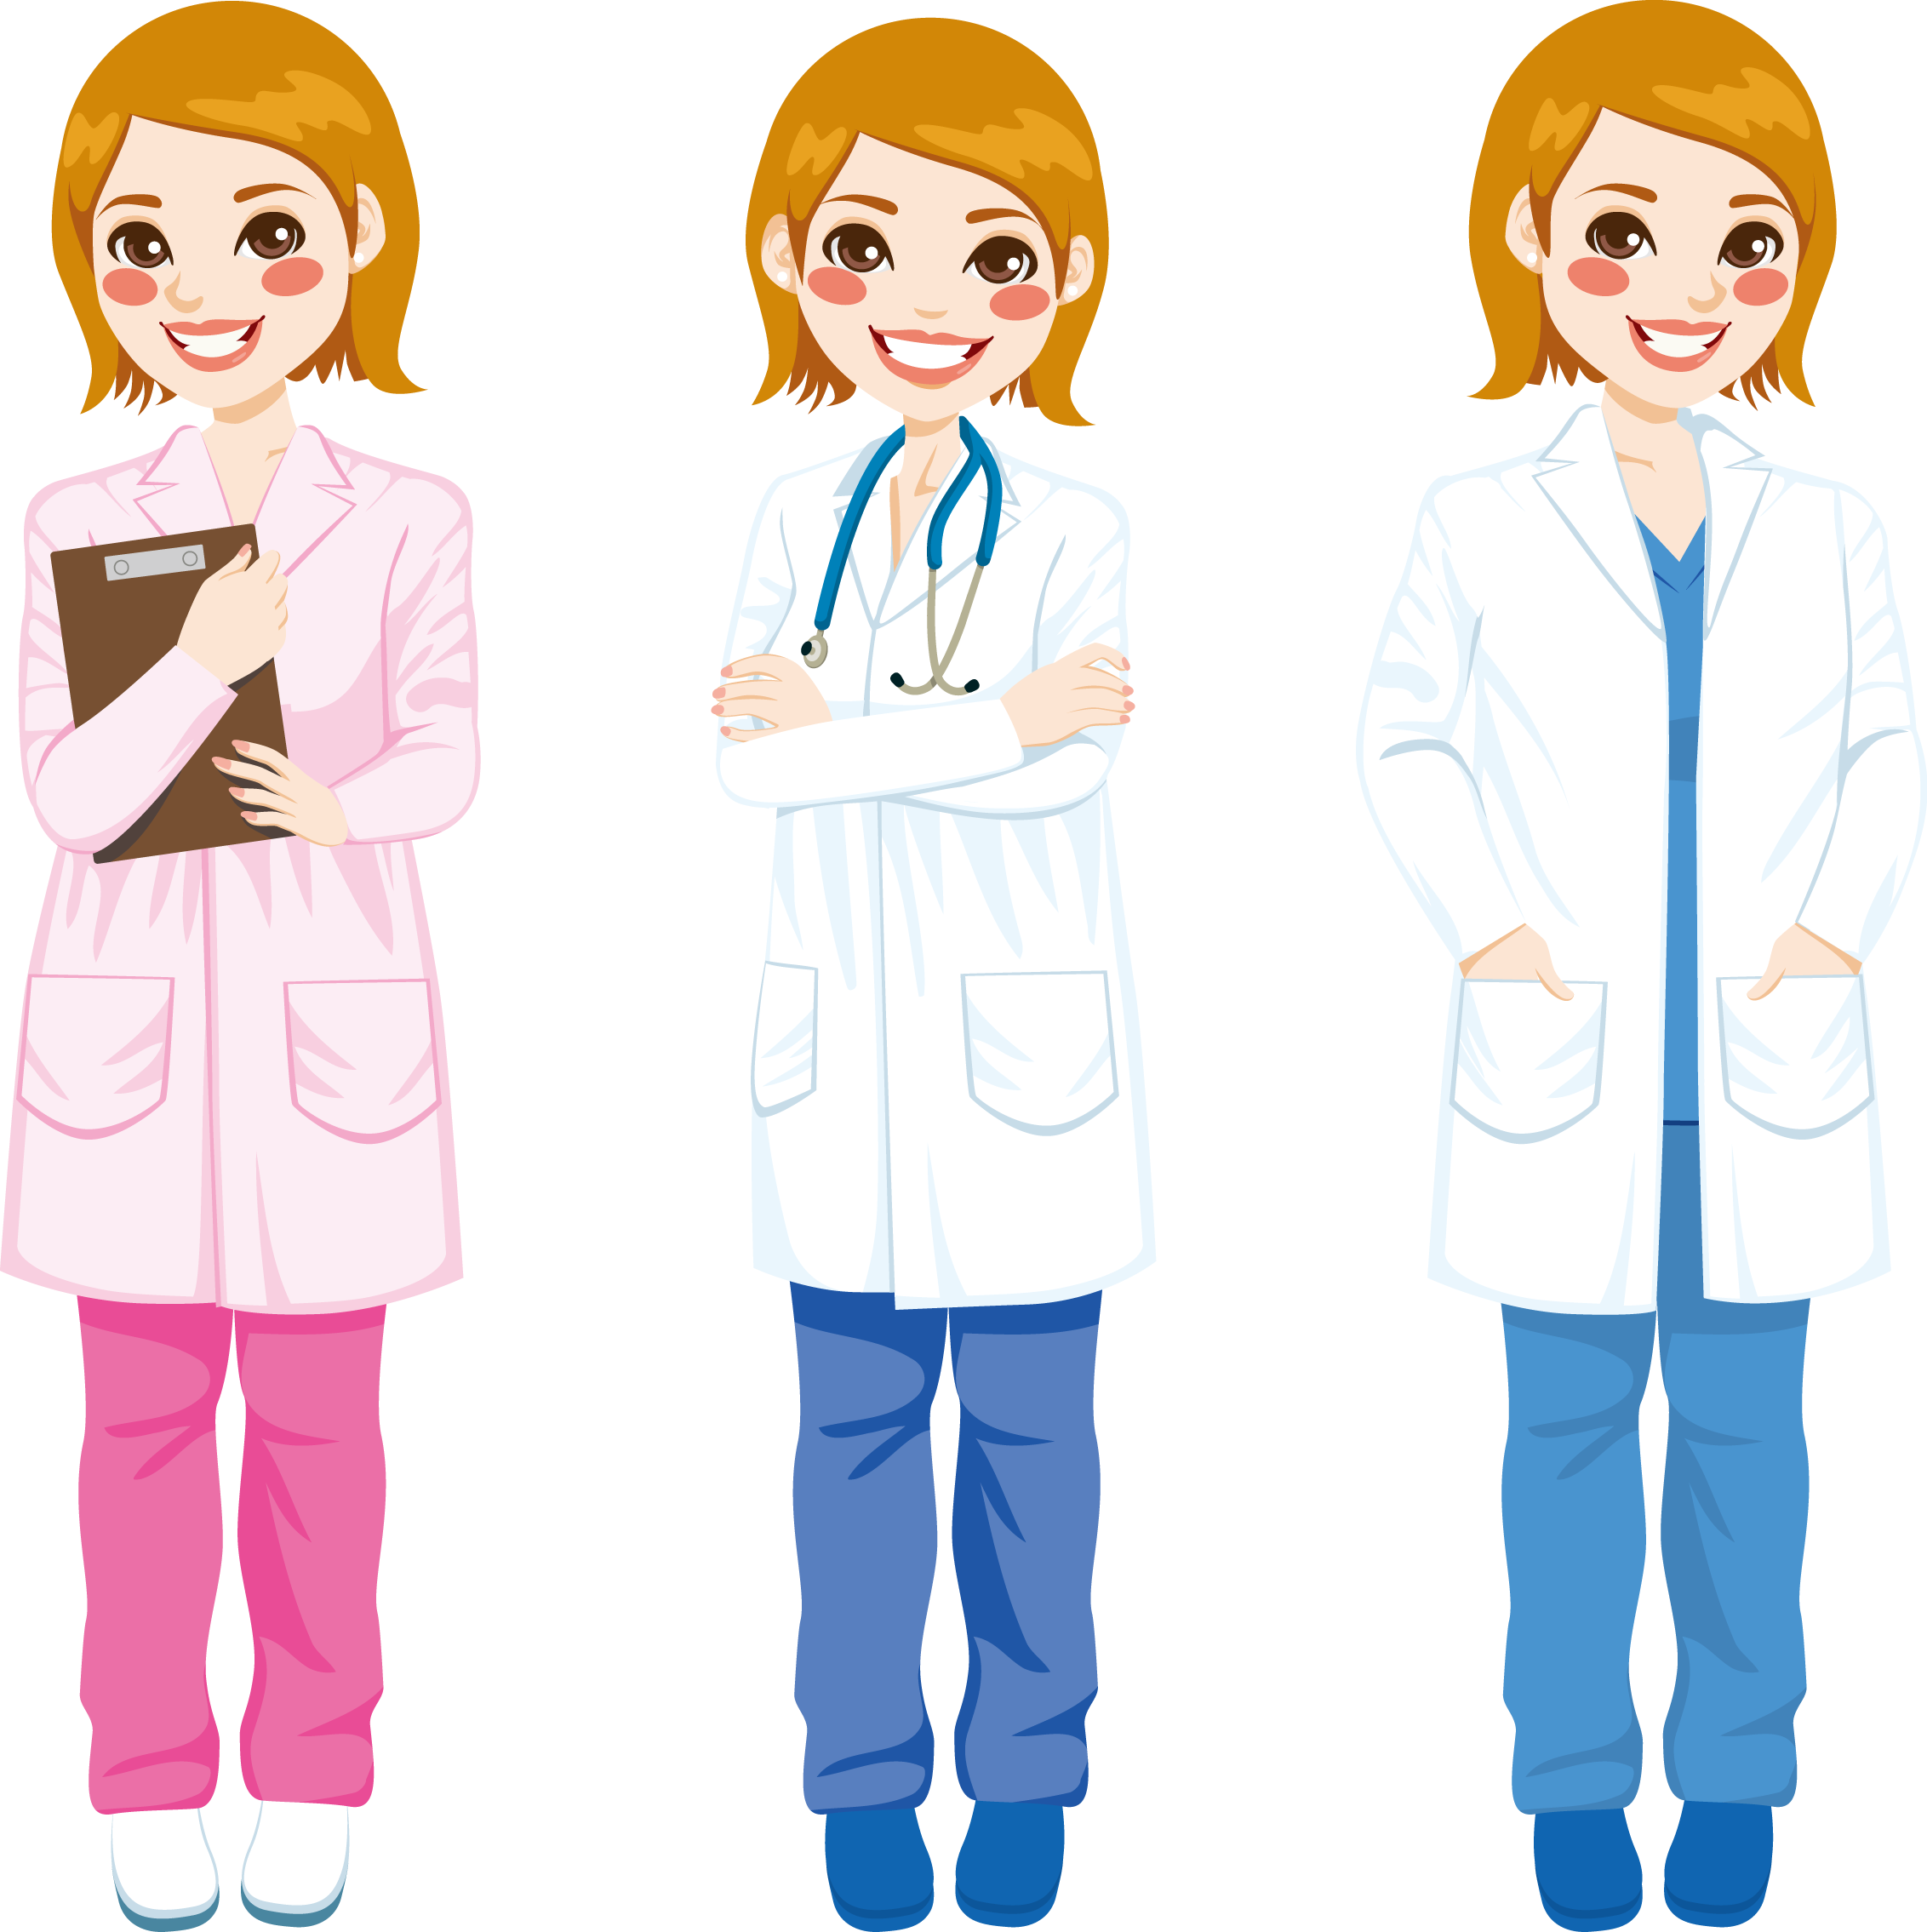 Physician royalty free stock. Doctors clipart white coat